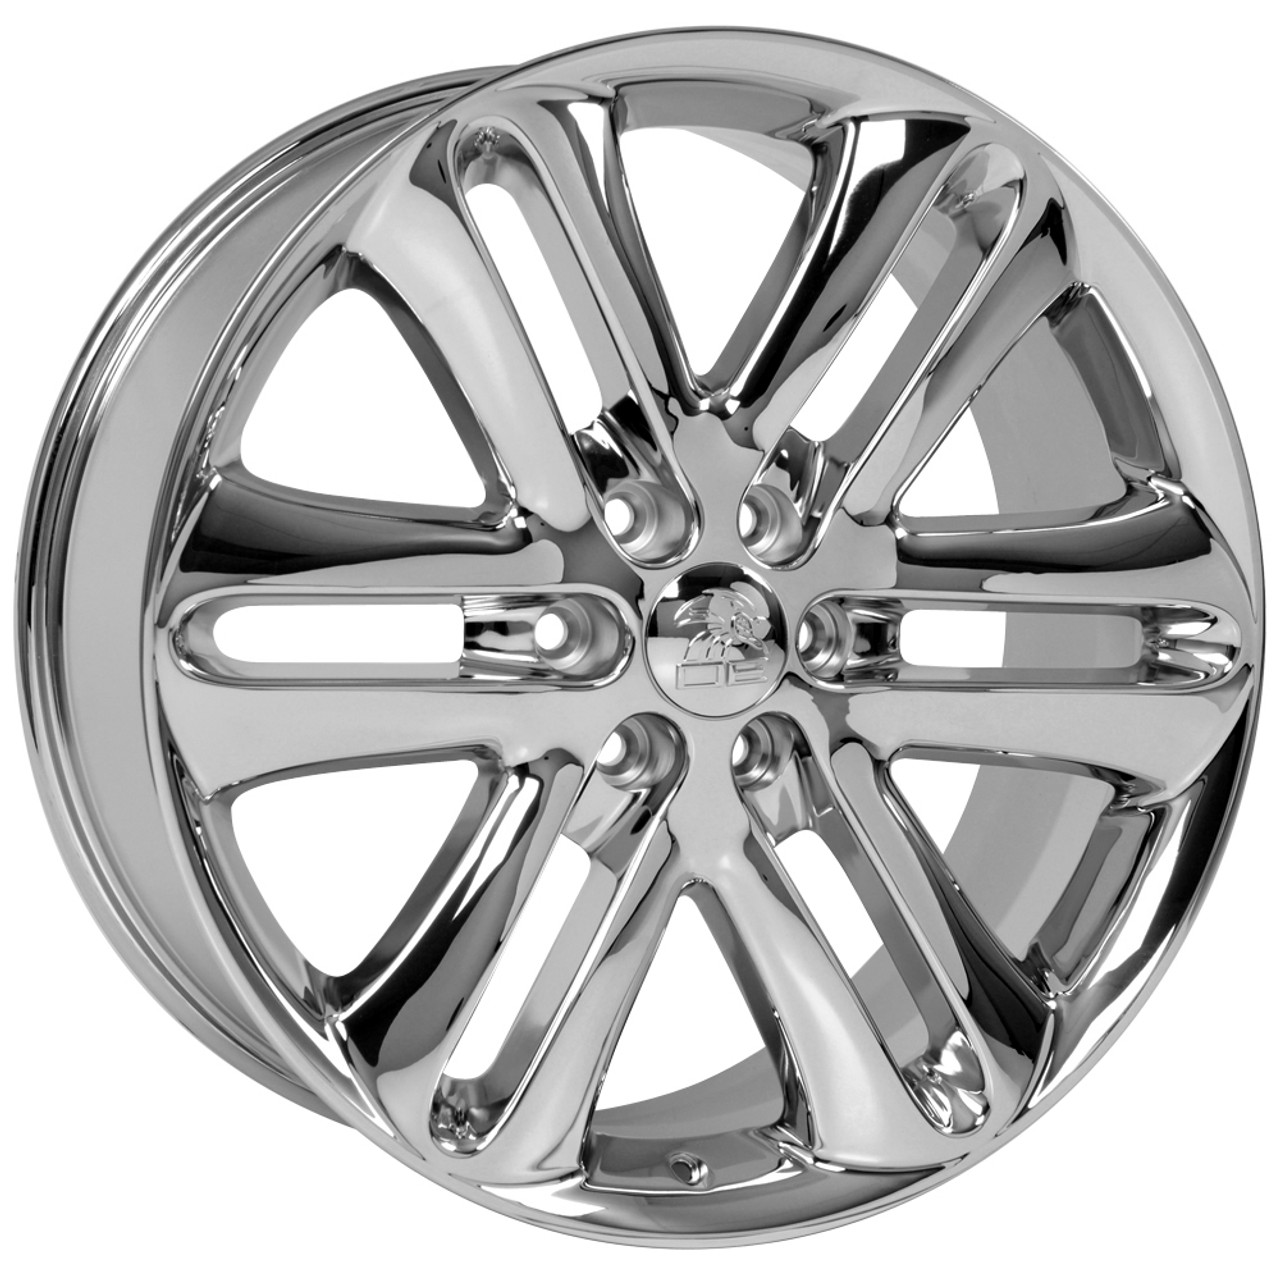 Ford F150 Wheels >> 22 Fits Ford F150 Navigator Expedition Lincoln Wheels Chrome Set Of 4 22x9